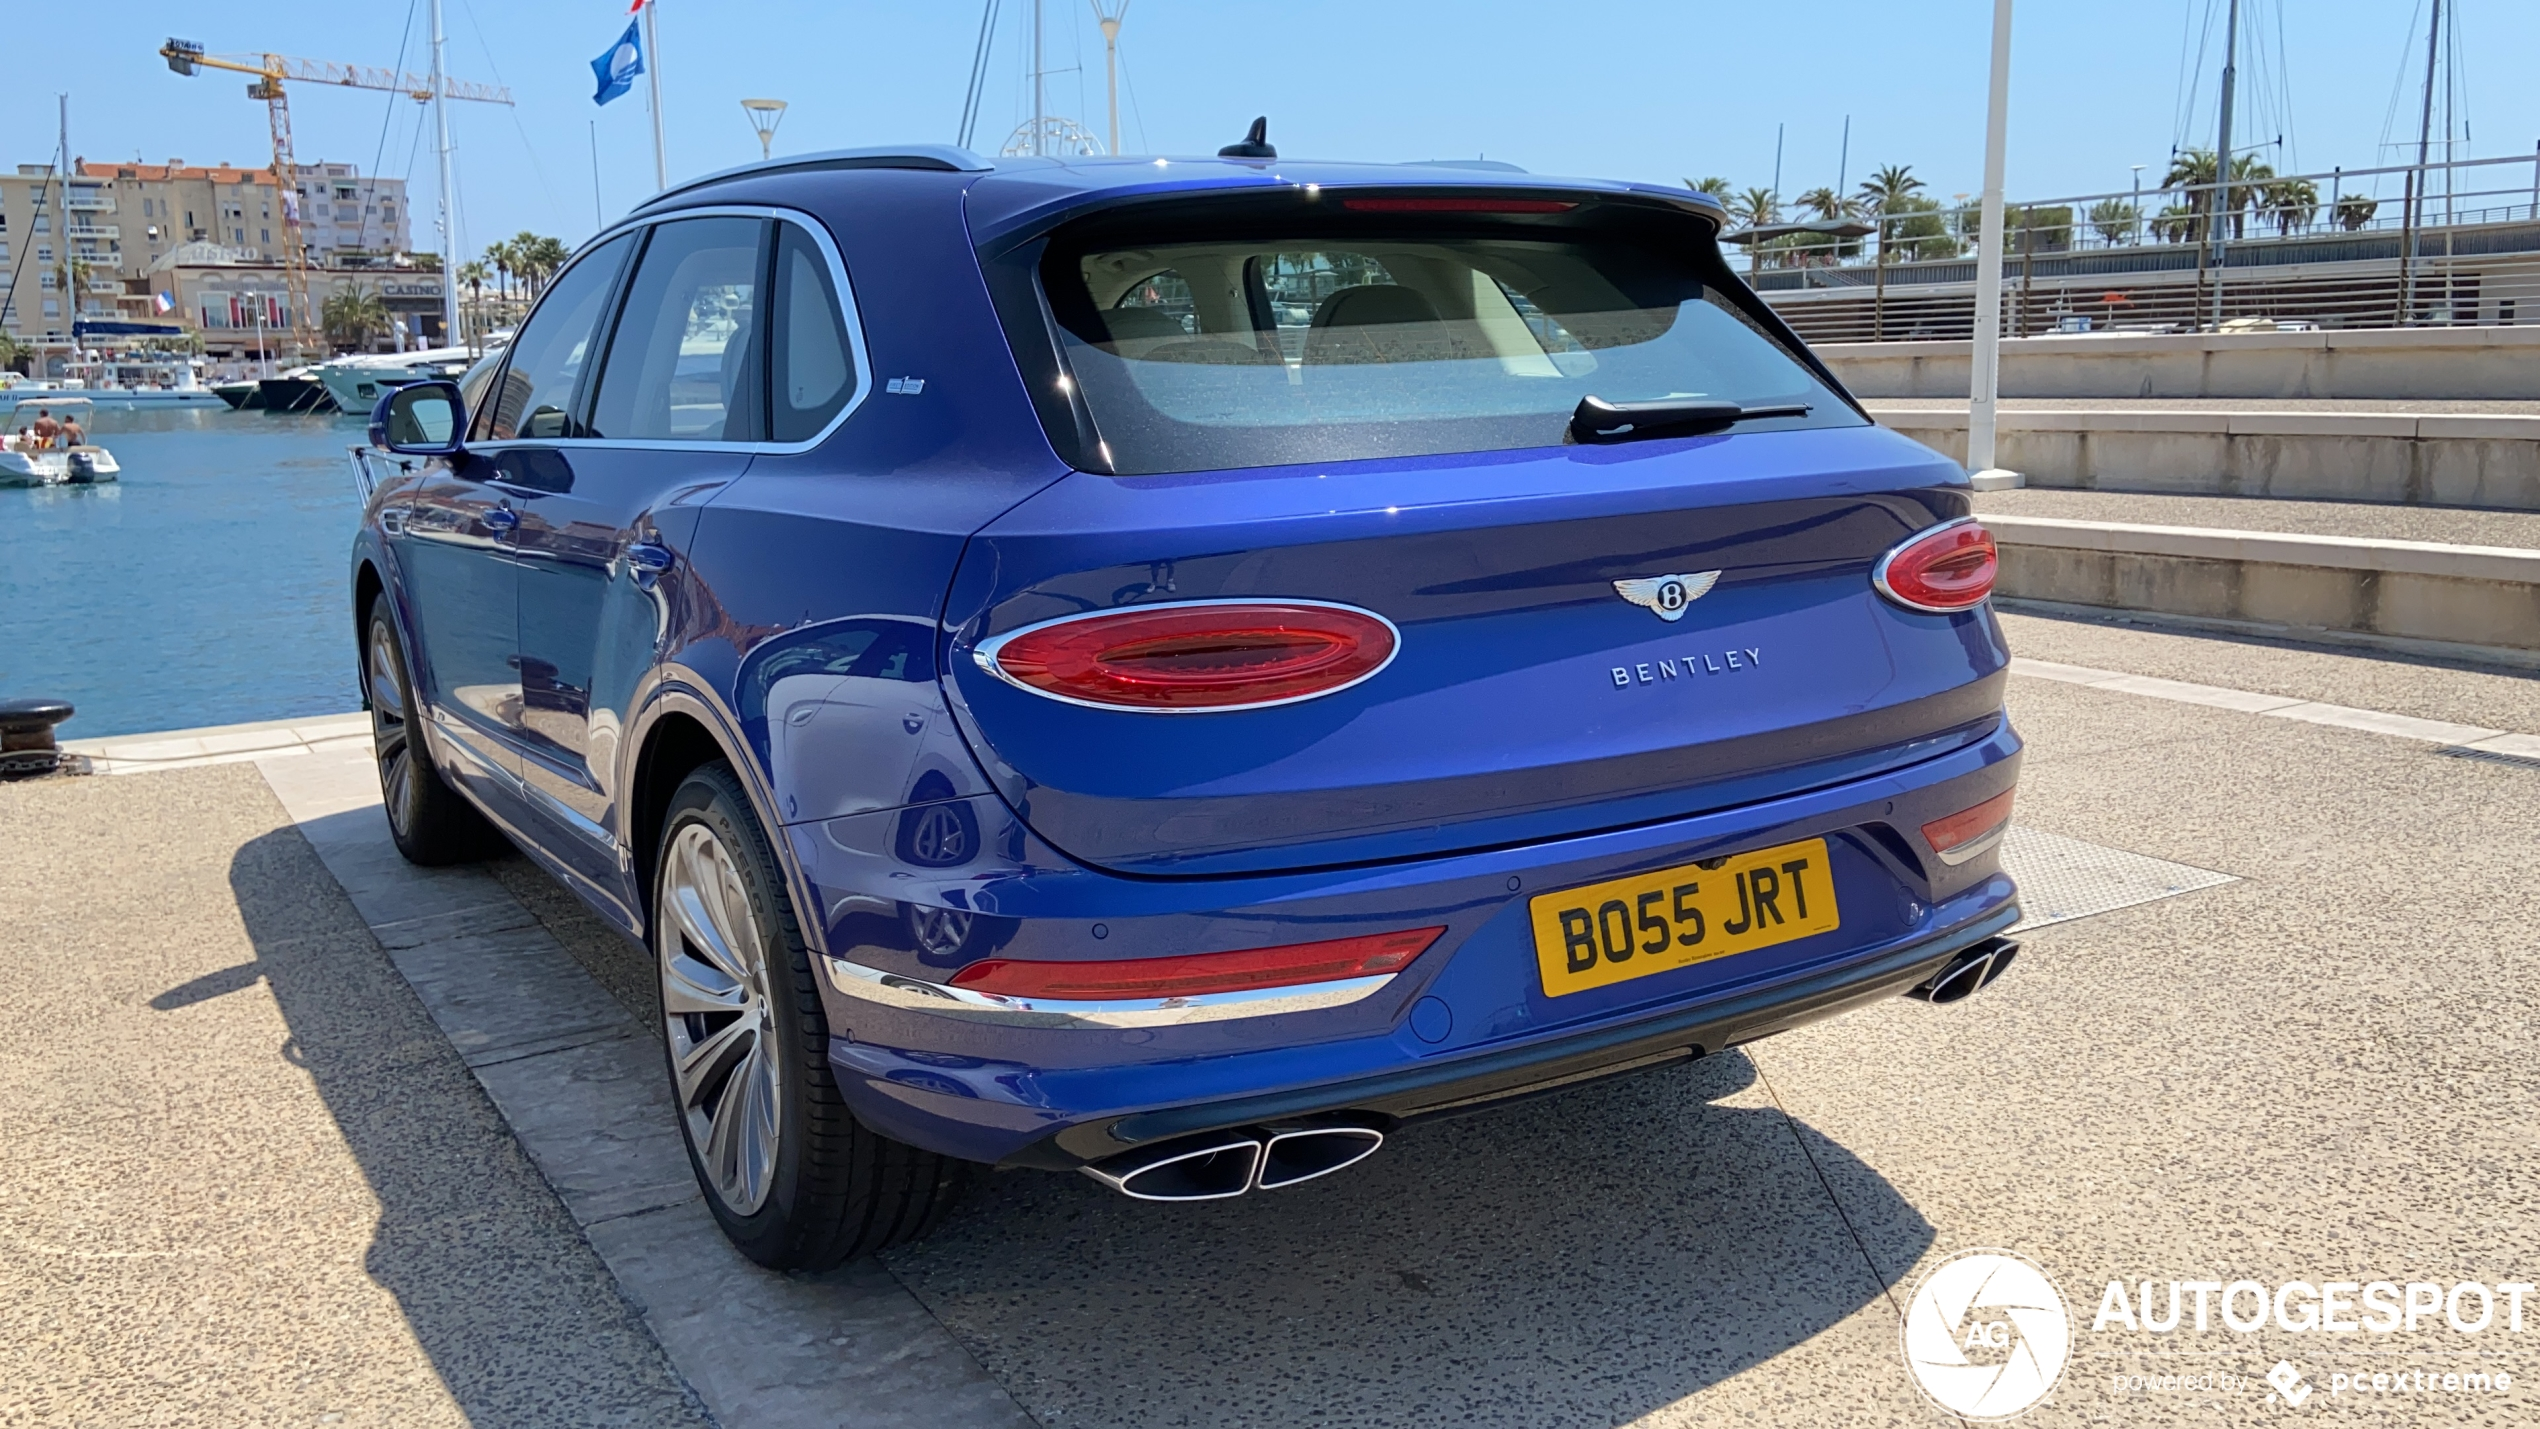 New Bentley Bentayga Already Reached The South Of France